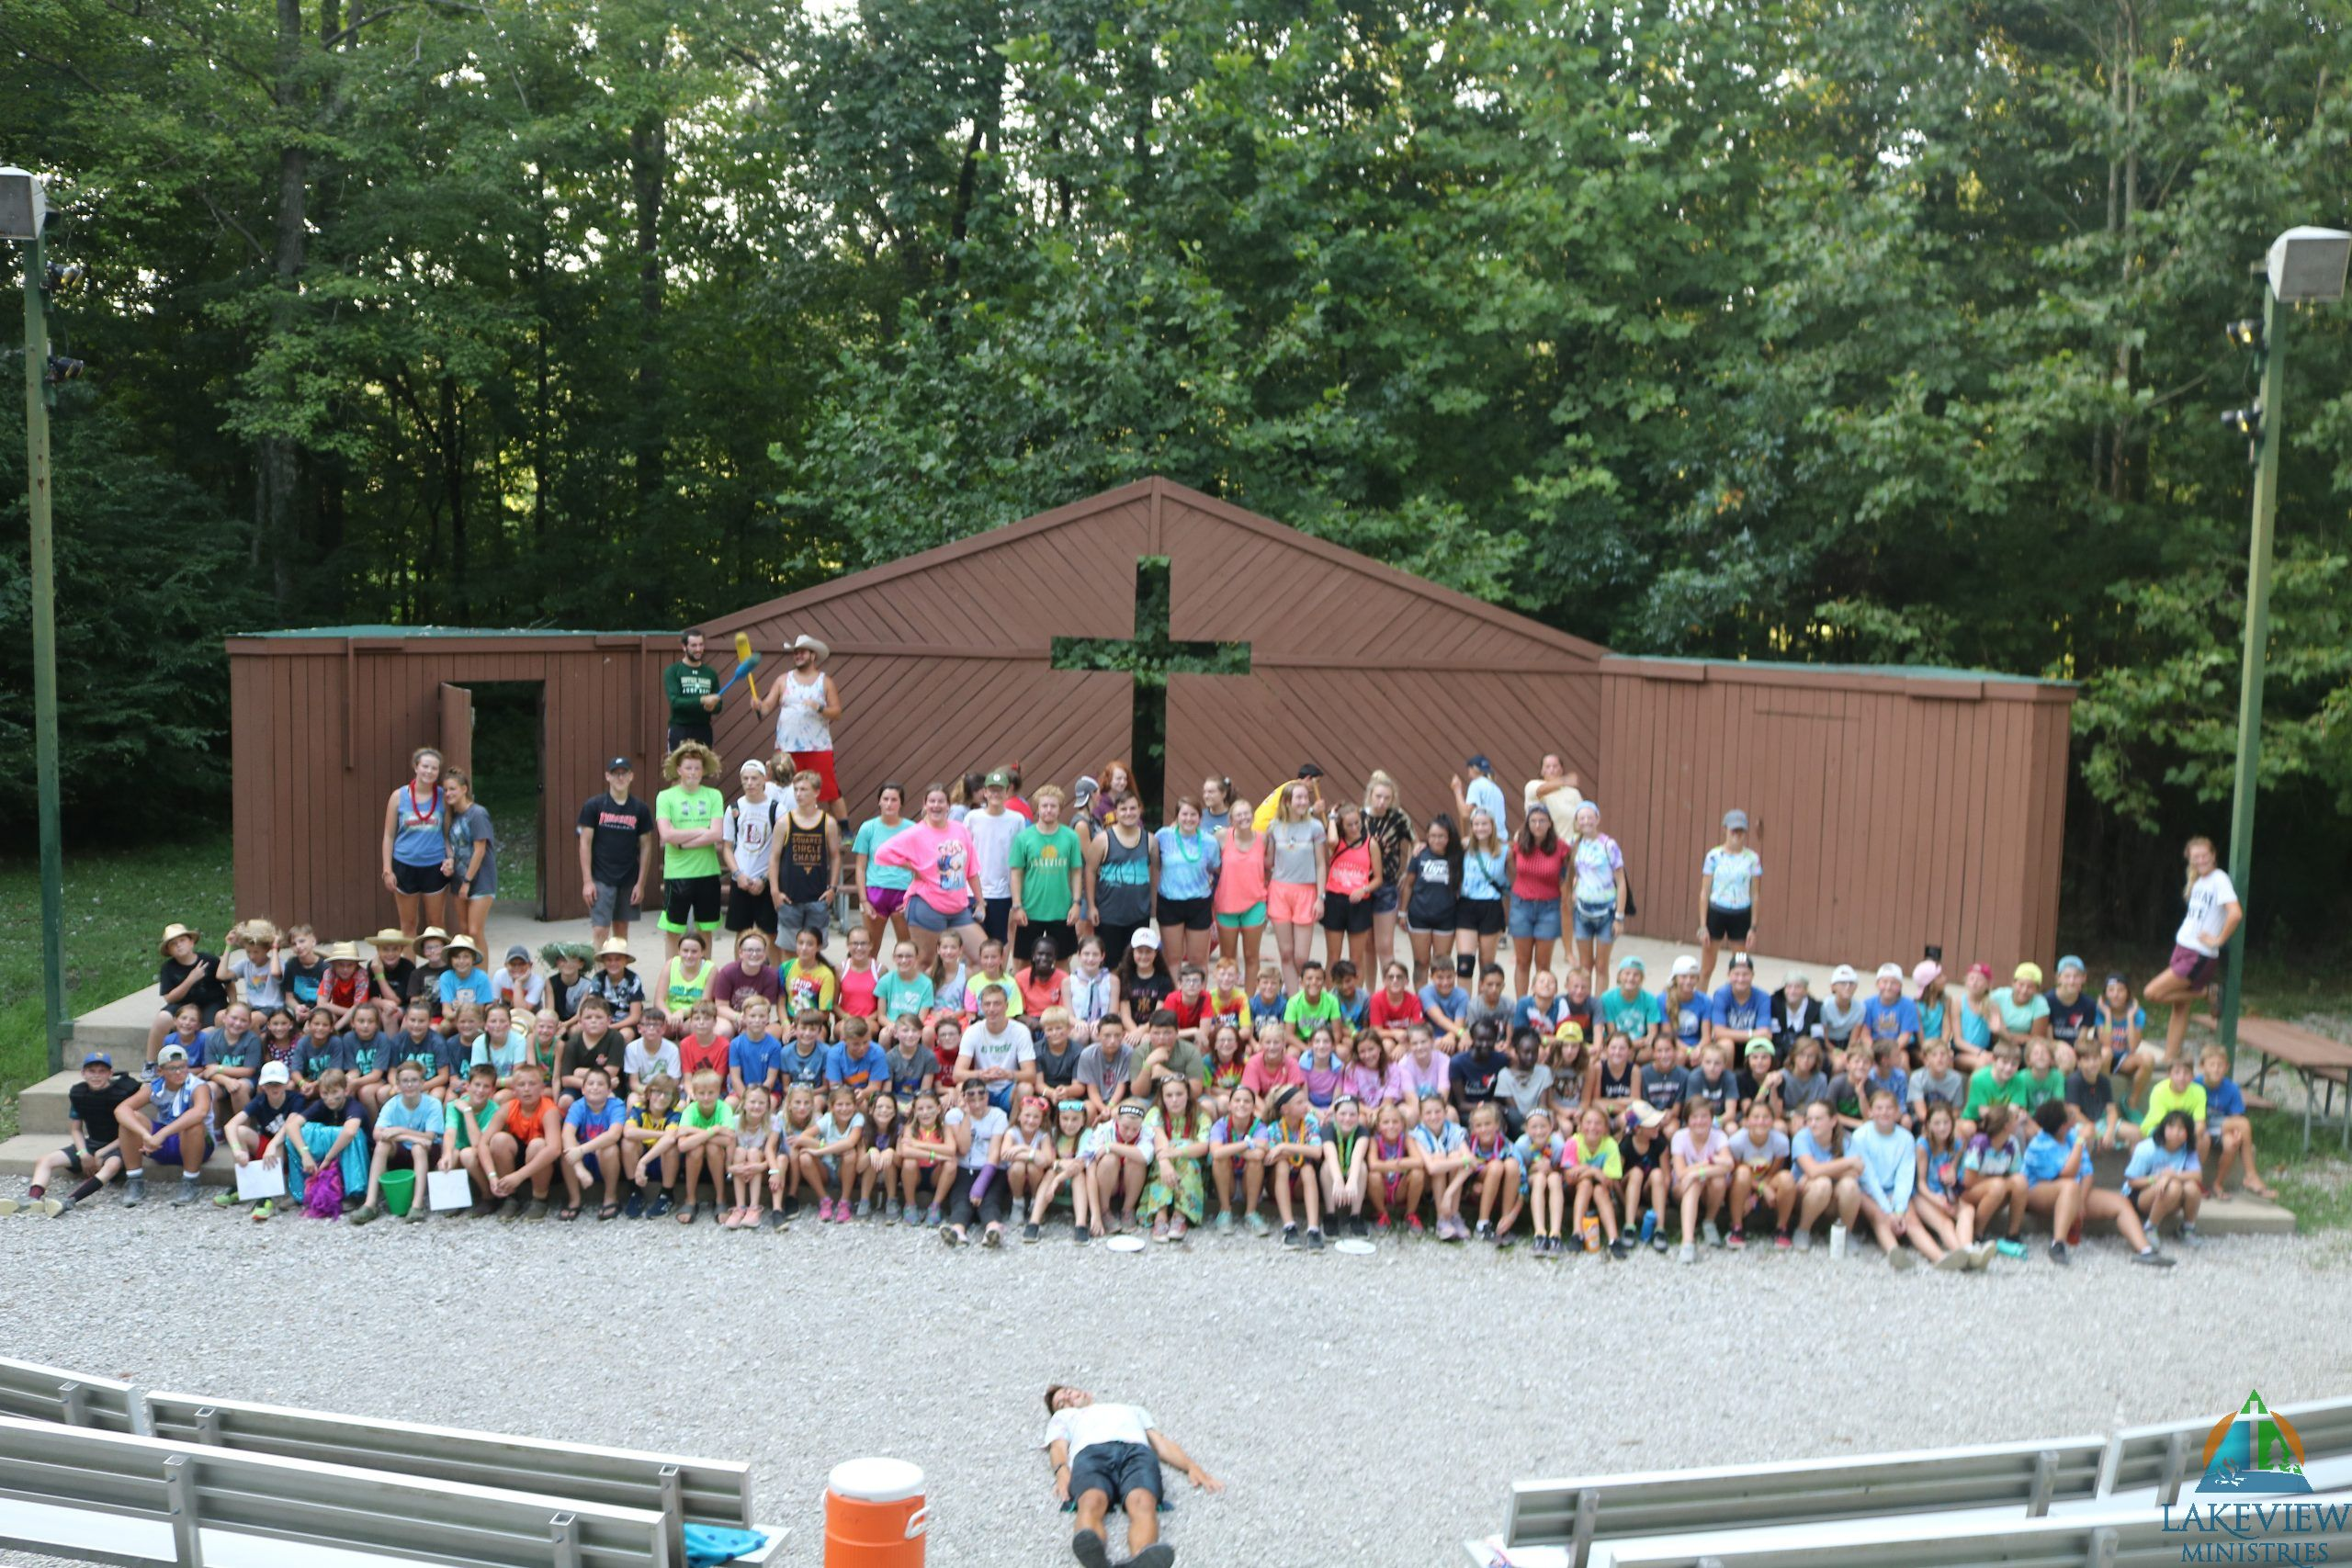 Lakeview Ministries Summer 2019